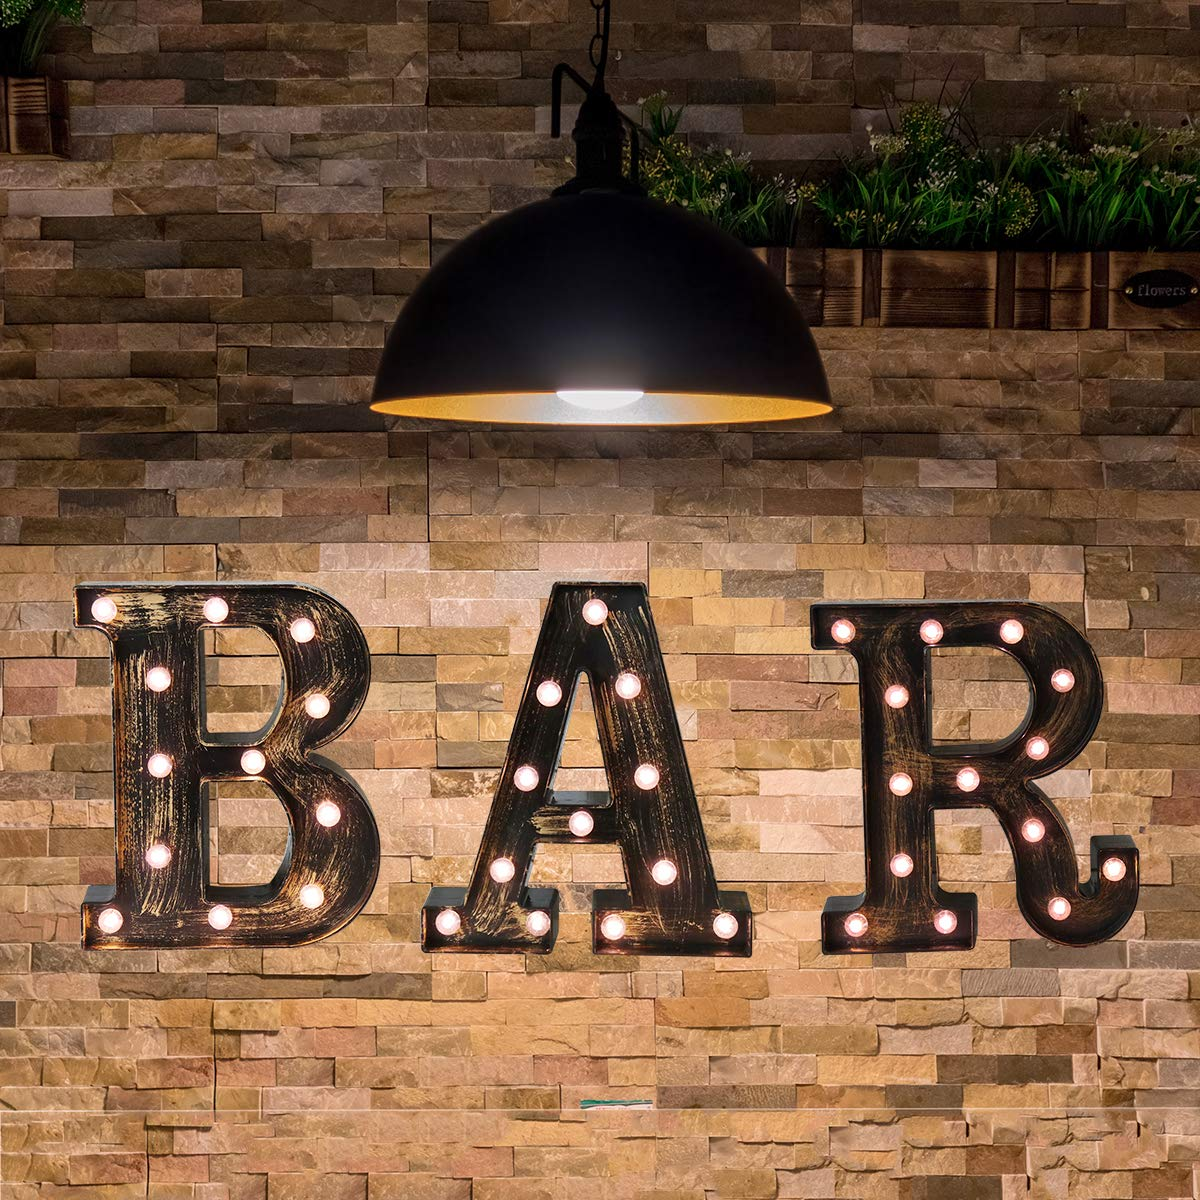 Industrial LED Marquee Letter Lights Alphabet Light Up BAR Sign Vintage Style Letter Lamp for Birthday Party Christmas Perfect for Events or Home Bar Decor(BAR Combination)